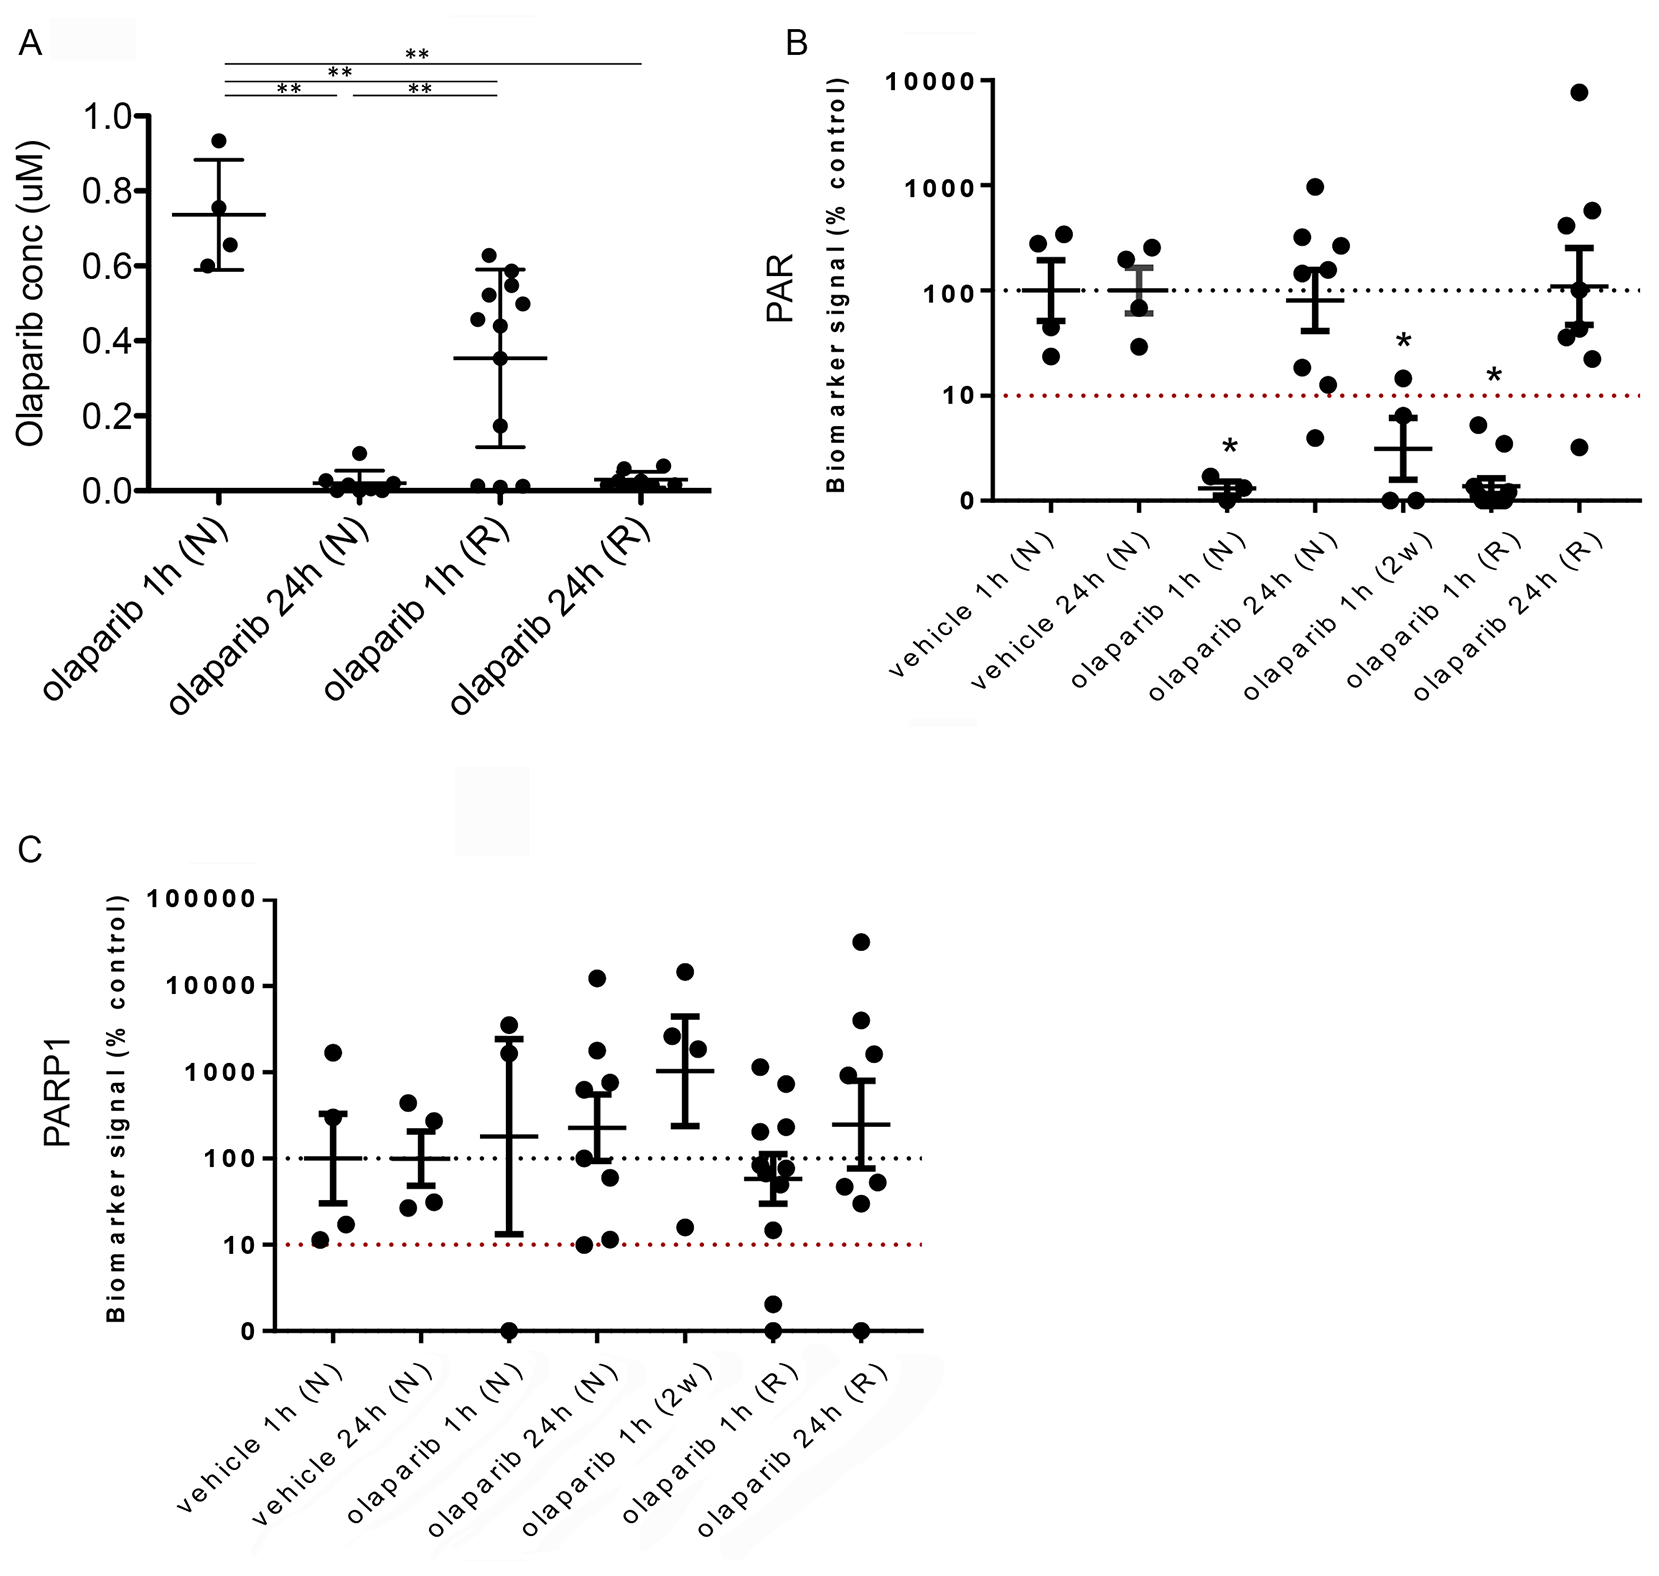 Reduced olaparib concentration in olaparib-resistant tumours does not correlate with increased PAR levels.